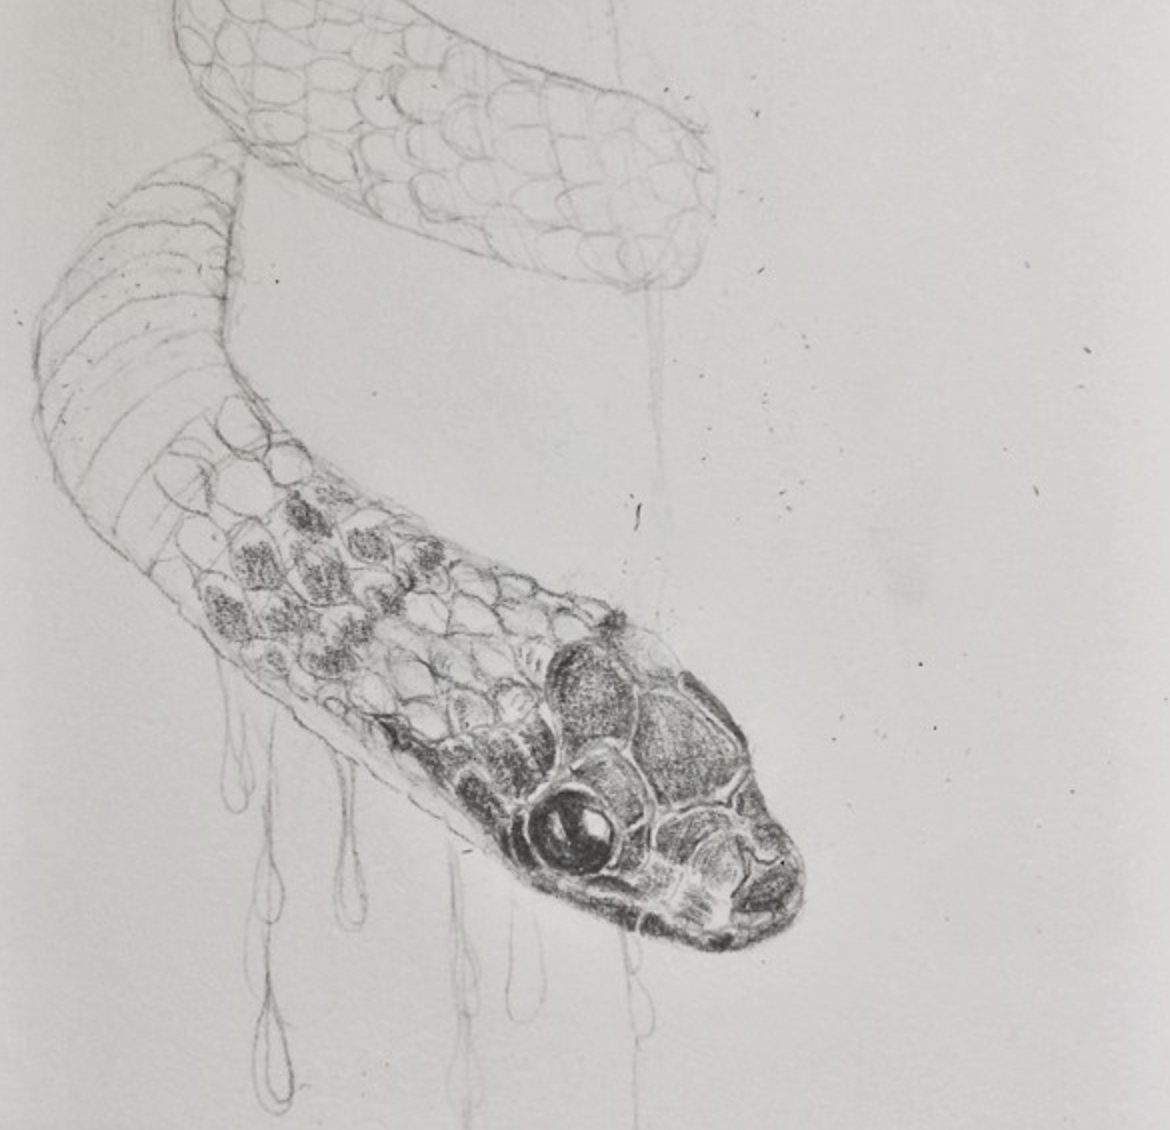 One of many abandoned snek drawings…